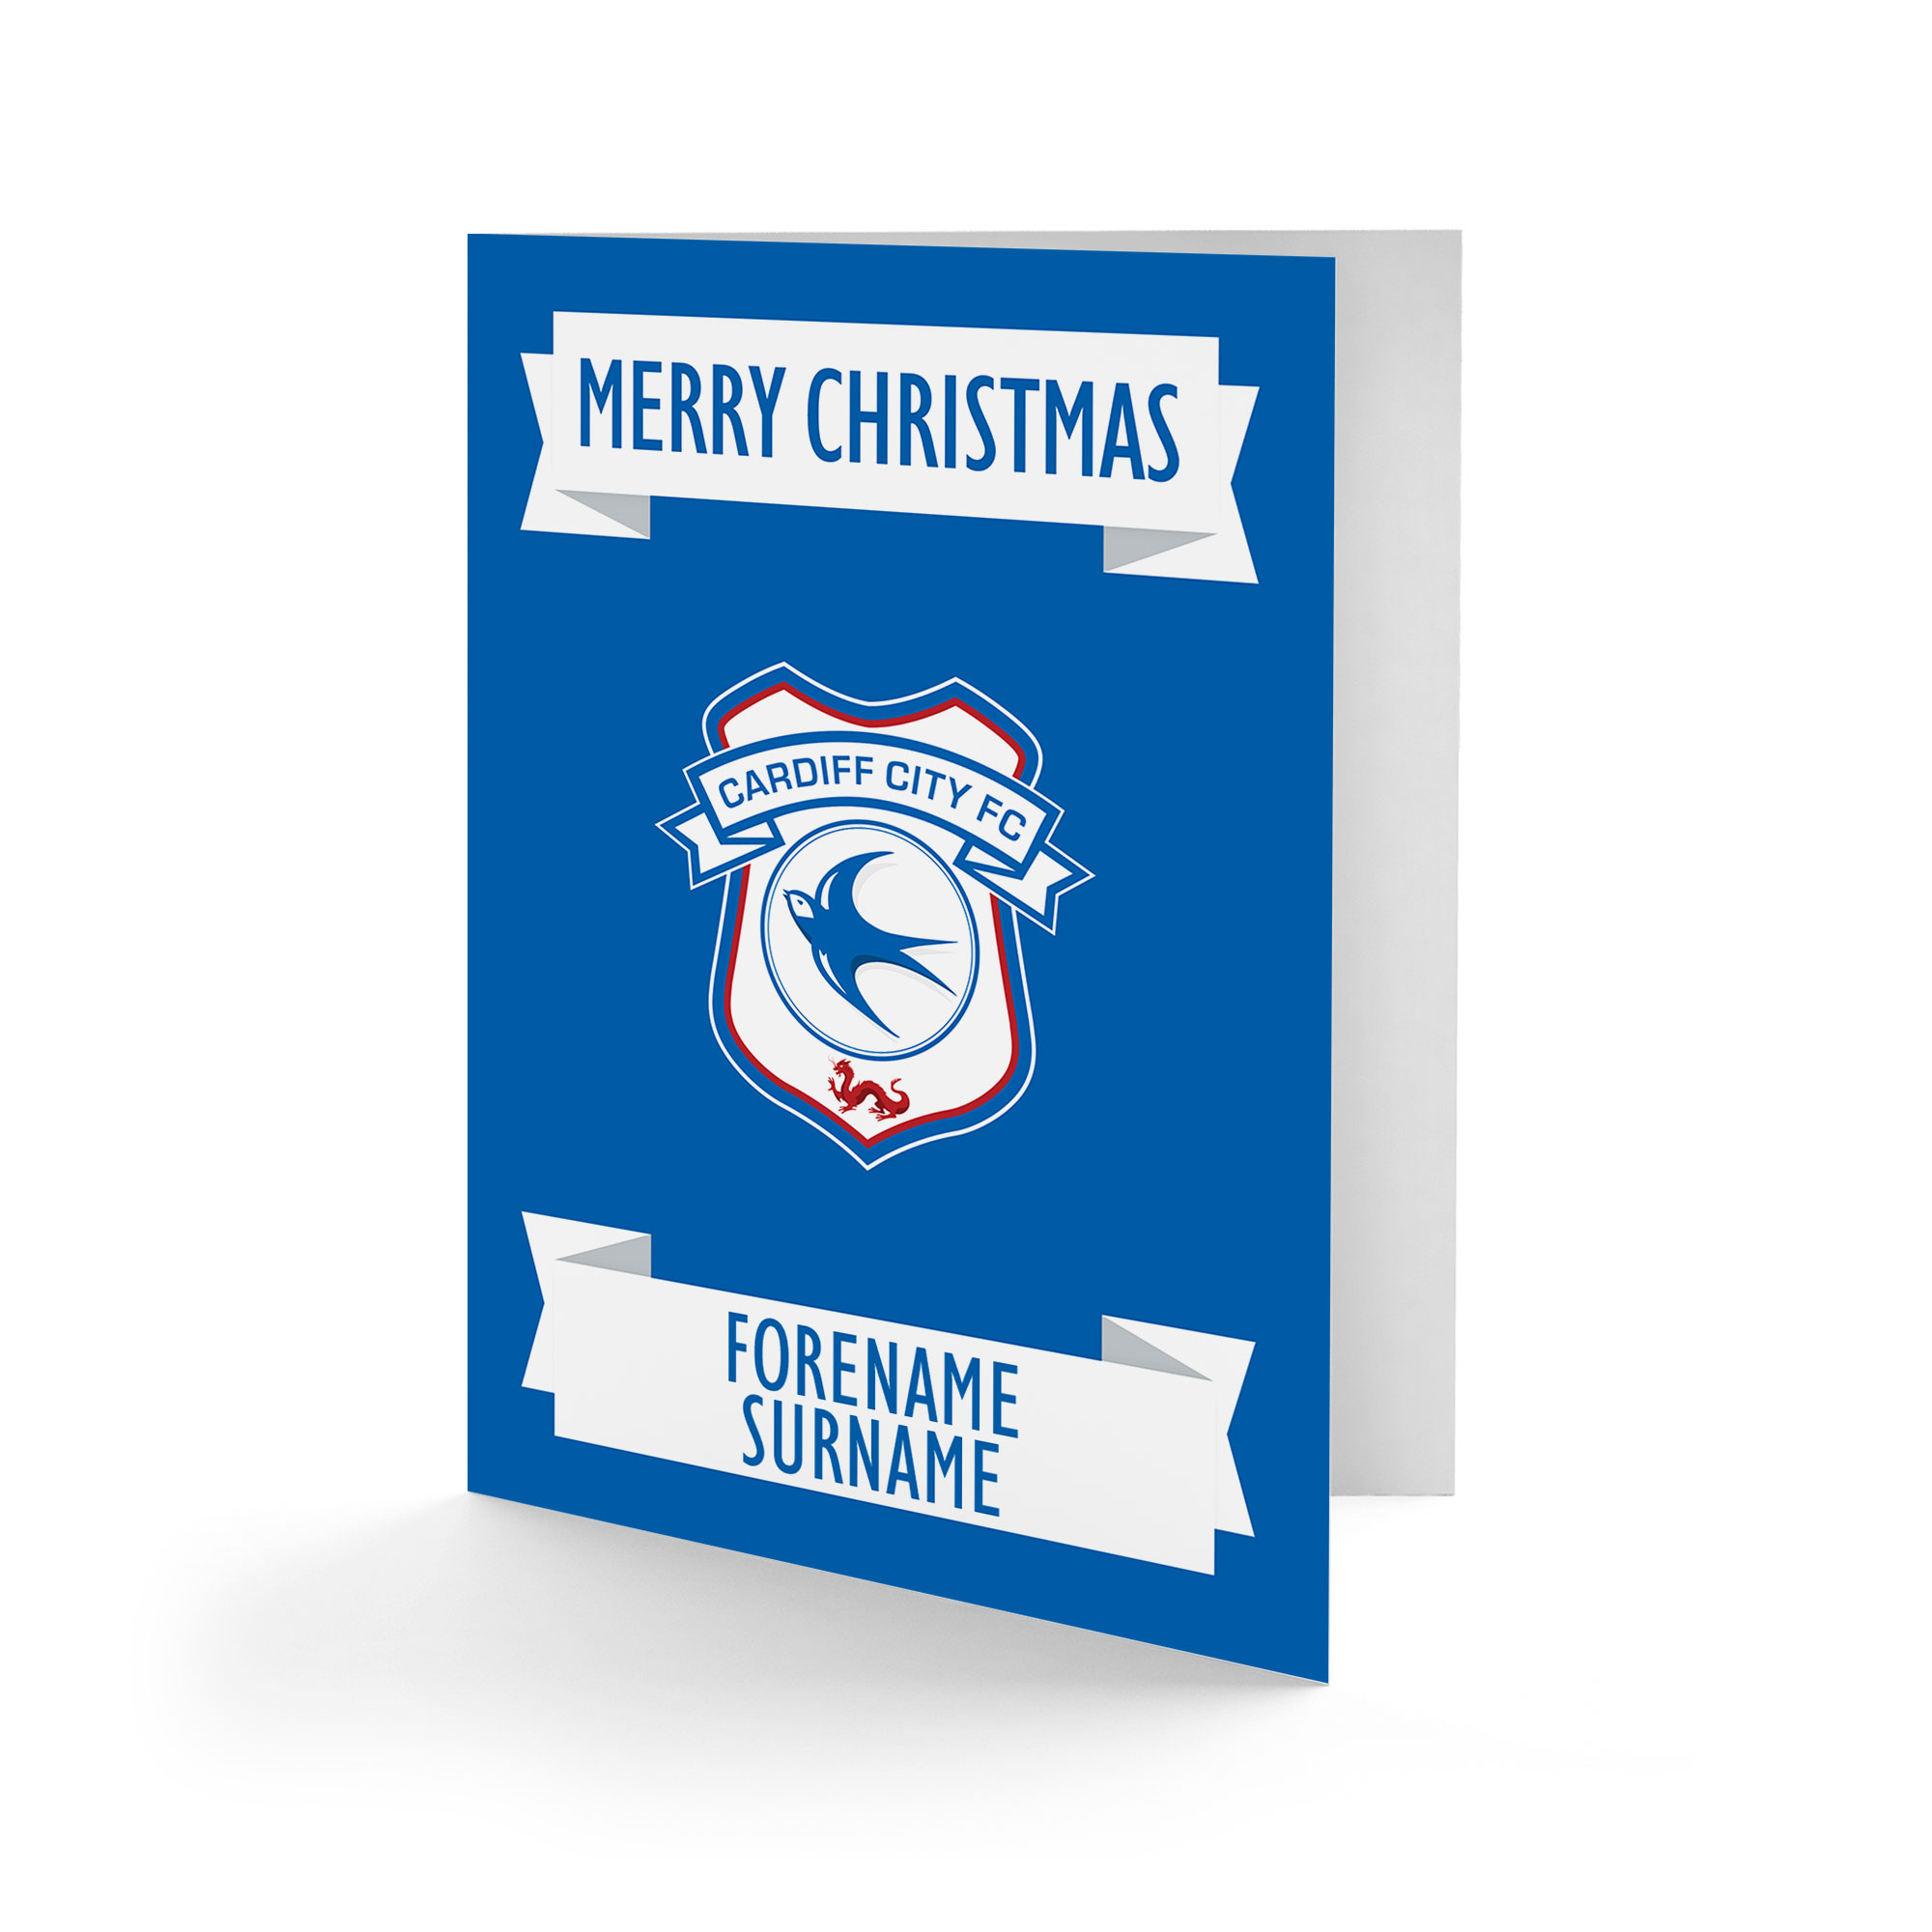 Cardiff City FC Crest Christmas Card